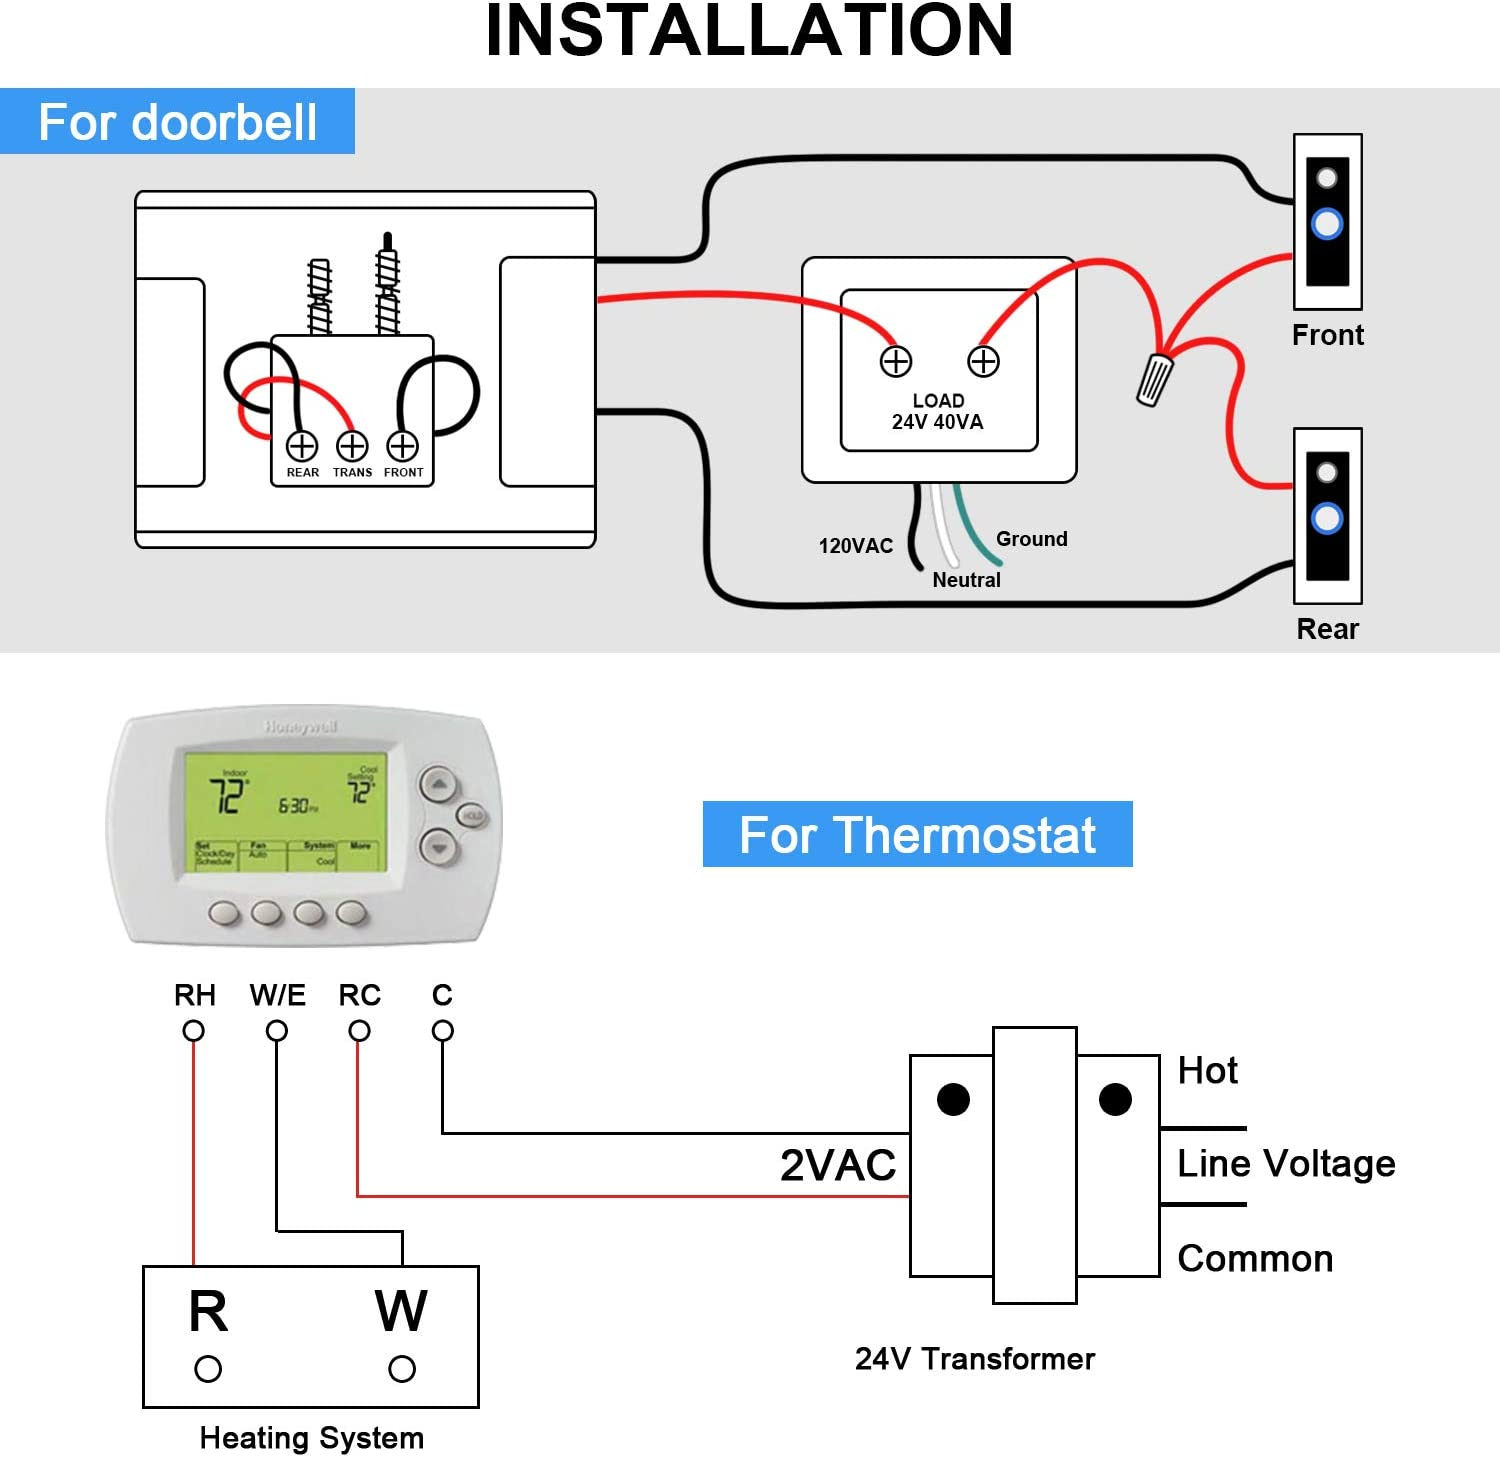 24v 40va Thermostat And Doorbell Transformer Power Supply Compatible With Nest Ecobee Sensi And Honeywell Thermostat Nest Hello Doorbell And All Versions Of Ring Doorbell Amazon Ca Tools Home Improvement